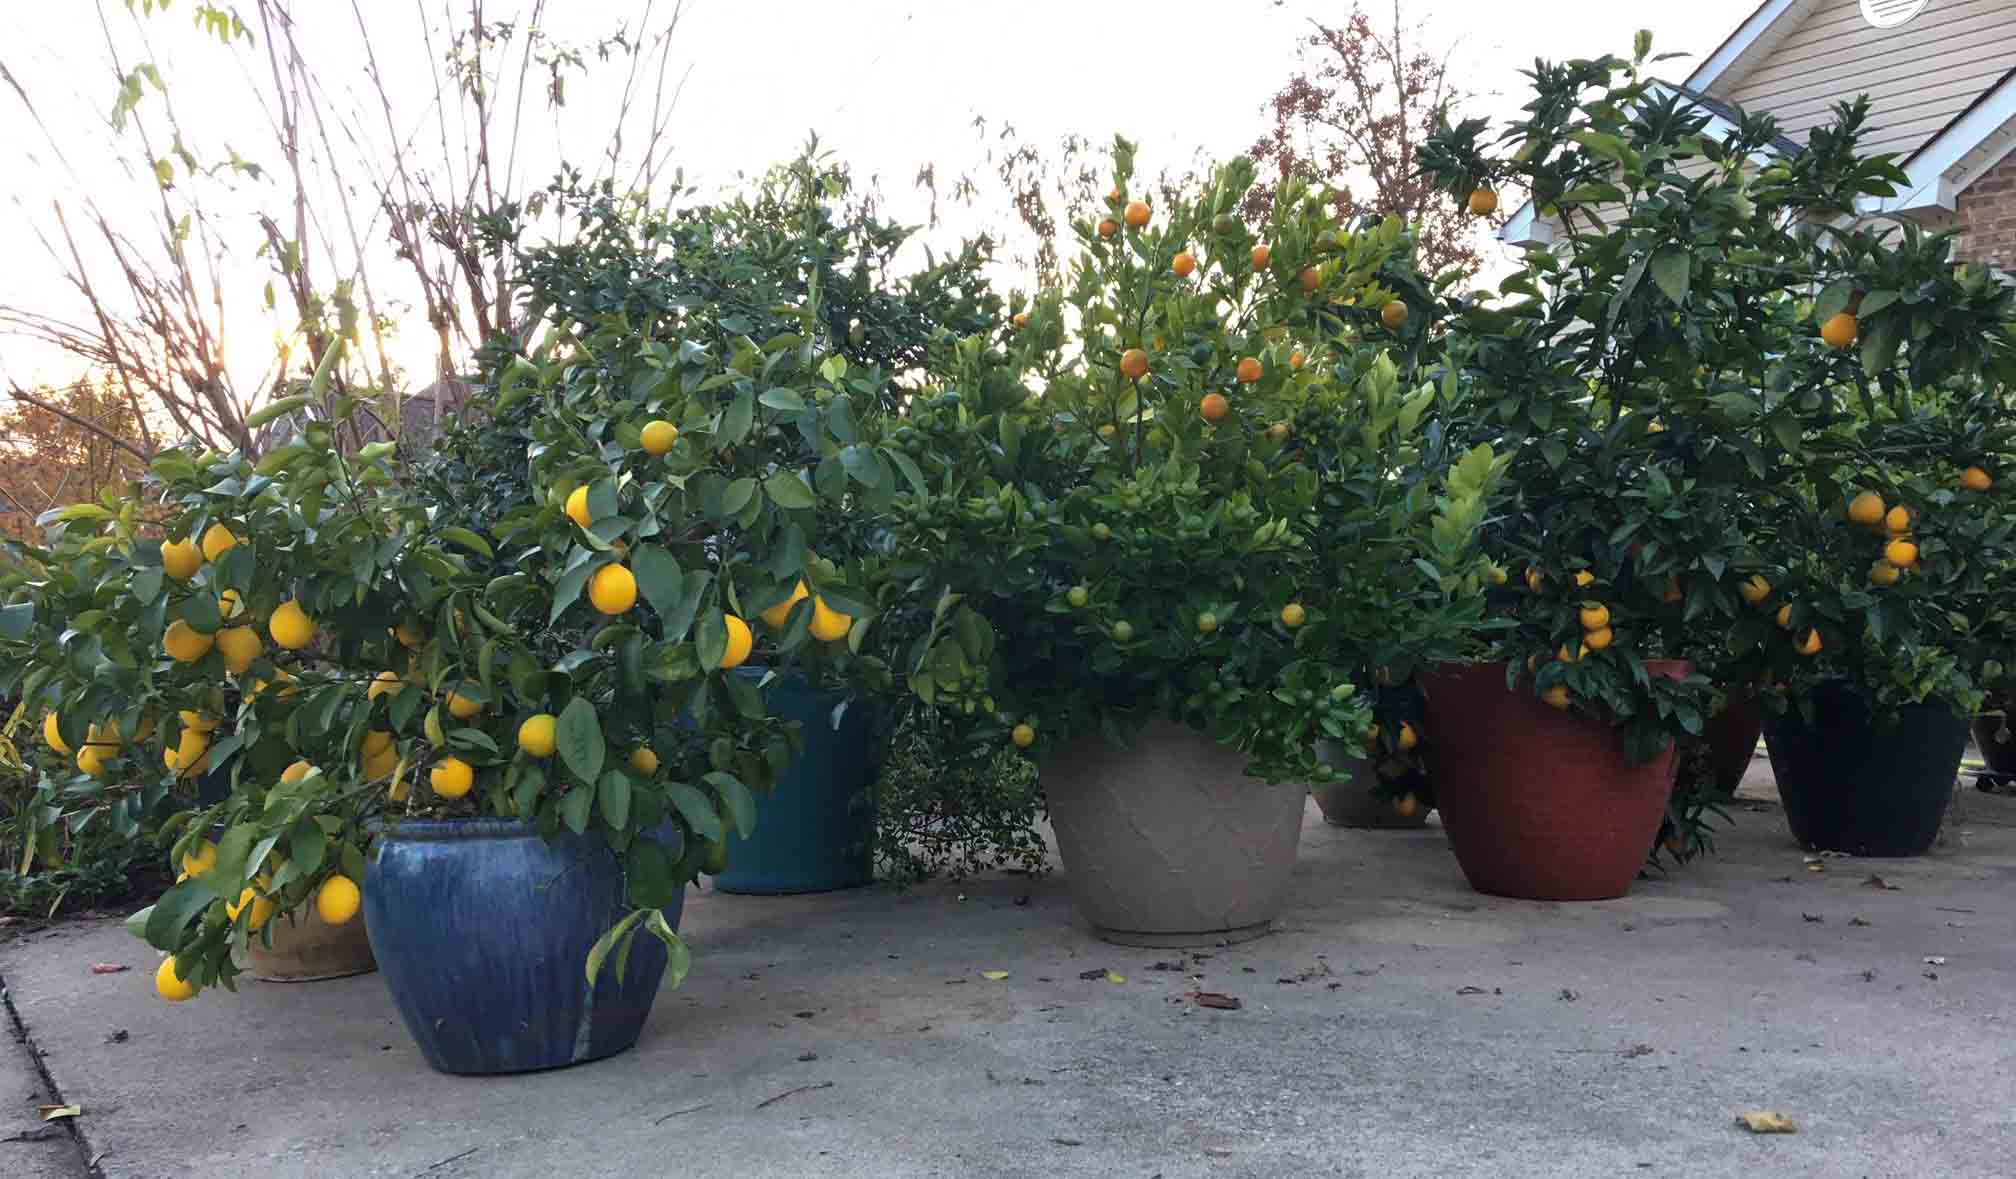 We grow lots of different varieties of citrus that would normally die in the winter where we live if we couldn't bring the plants in and out of our garage on nights when temps go well below freezing. Container gardening questions.